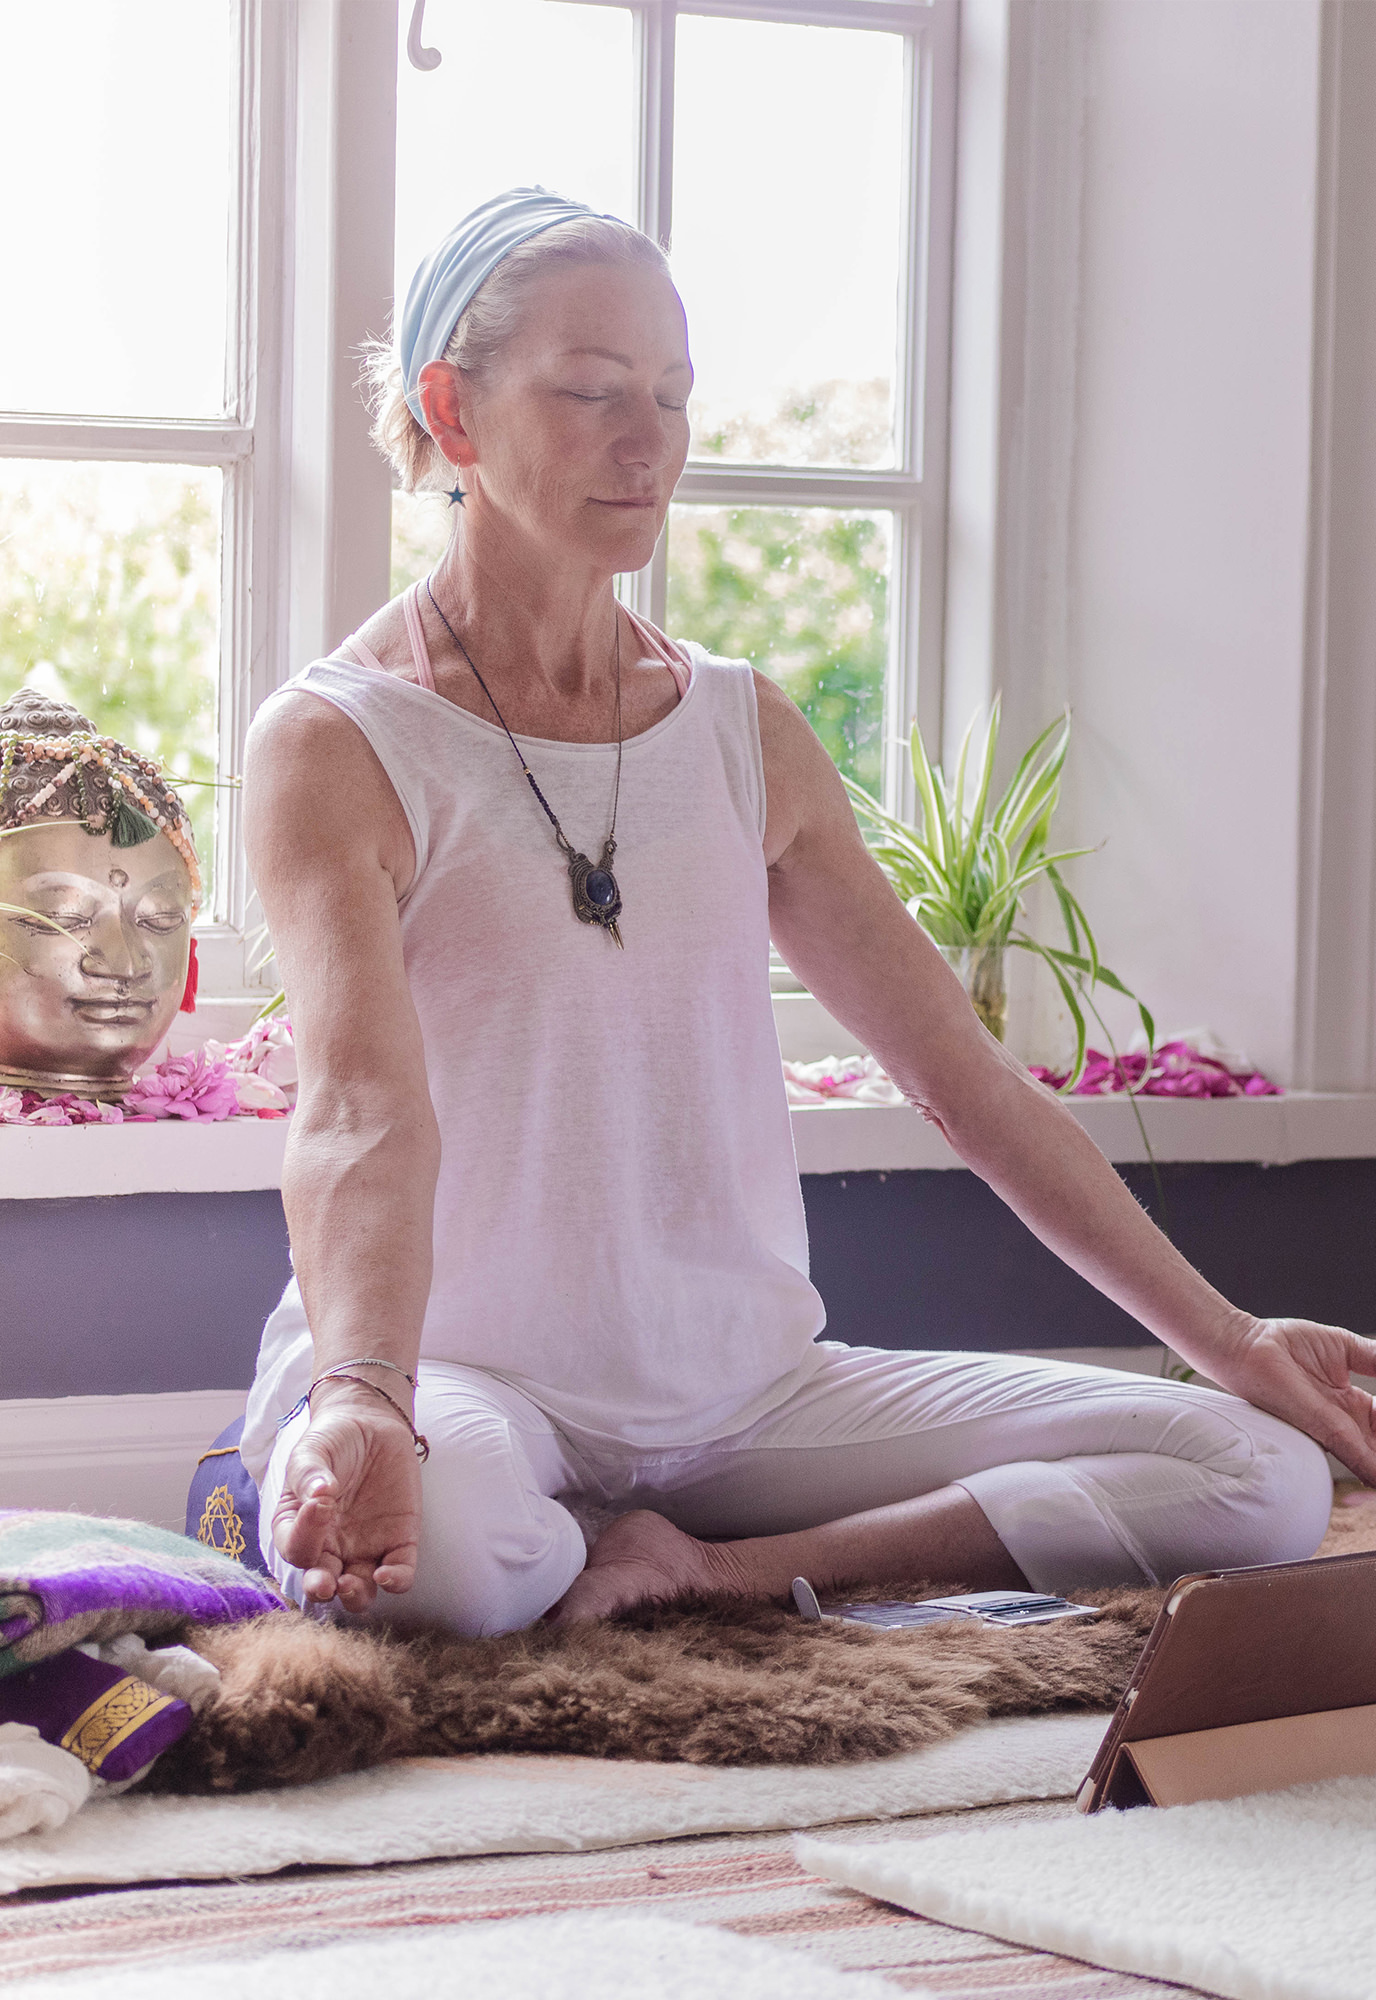 Kundalini Yoga - The Journey - An Ancient Philosophy symbiotic with our timeKundalini Yoga is the root of all yoga practices and was traditionally known as the householder's yoga. It was brought to the West in the 1960's by Yogi Bhajan, an Indian born Sikh, and it is his interpretation of the discipline that is practised today.     Normal   0               false   false   false      EN-GB   X-NONE   X-NONE                                                                                                                                                                                                                                                                                                                                                                                                                                                                                                                                                                                                                                                                                                                                                                                                                                                                                                                                                                                                                                                                                                                                                                                                                                                                             /* Style Definitions */  table.MsoNormalTable 	{mso-style-name: